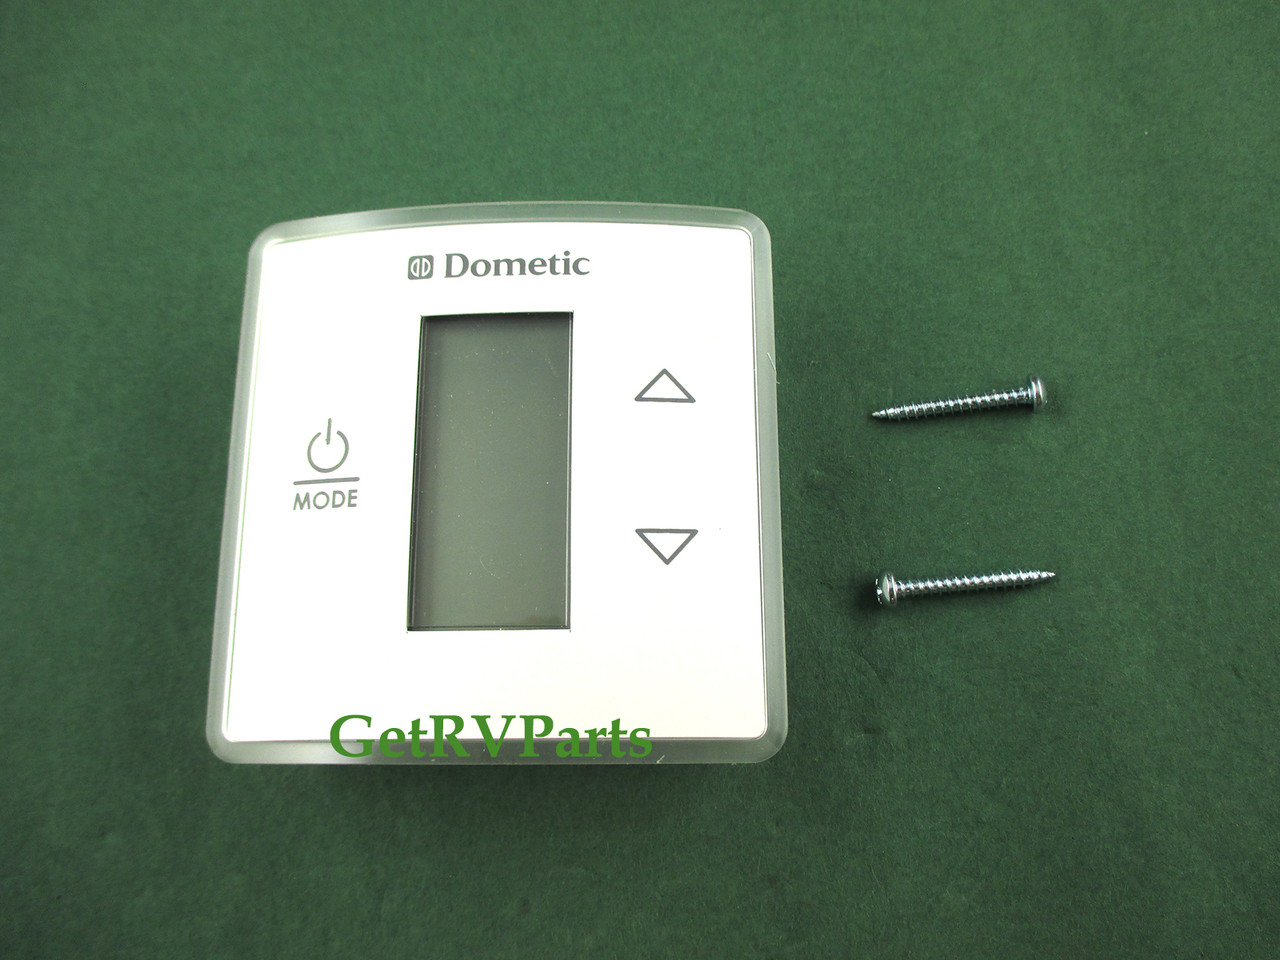 small resolution of dometic 331625000 rv air conditioner cool furnace thermostat image 1 loading zoom